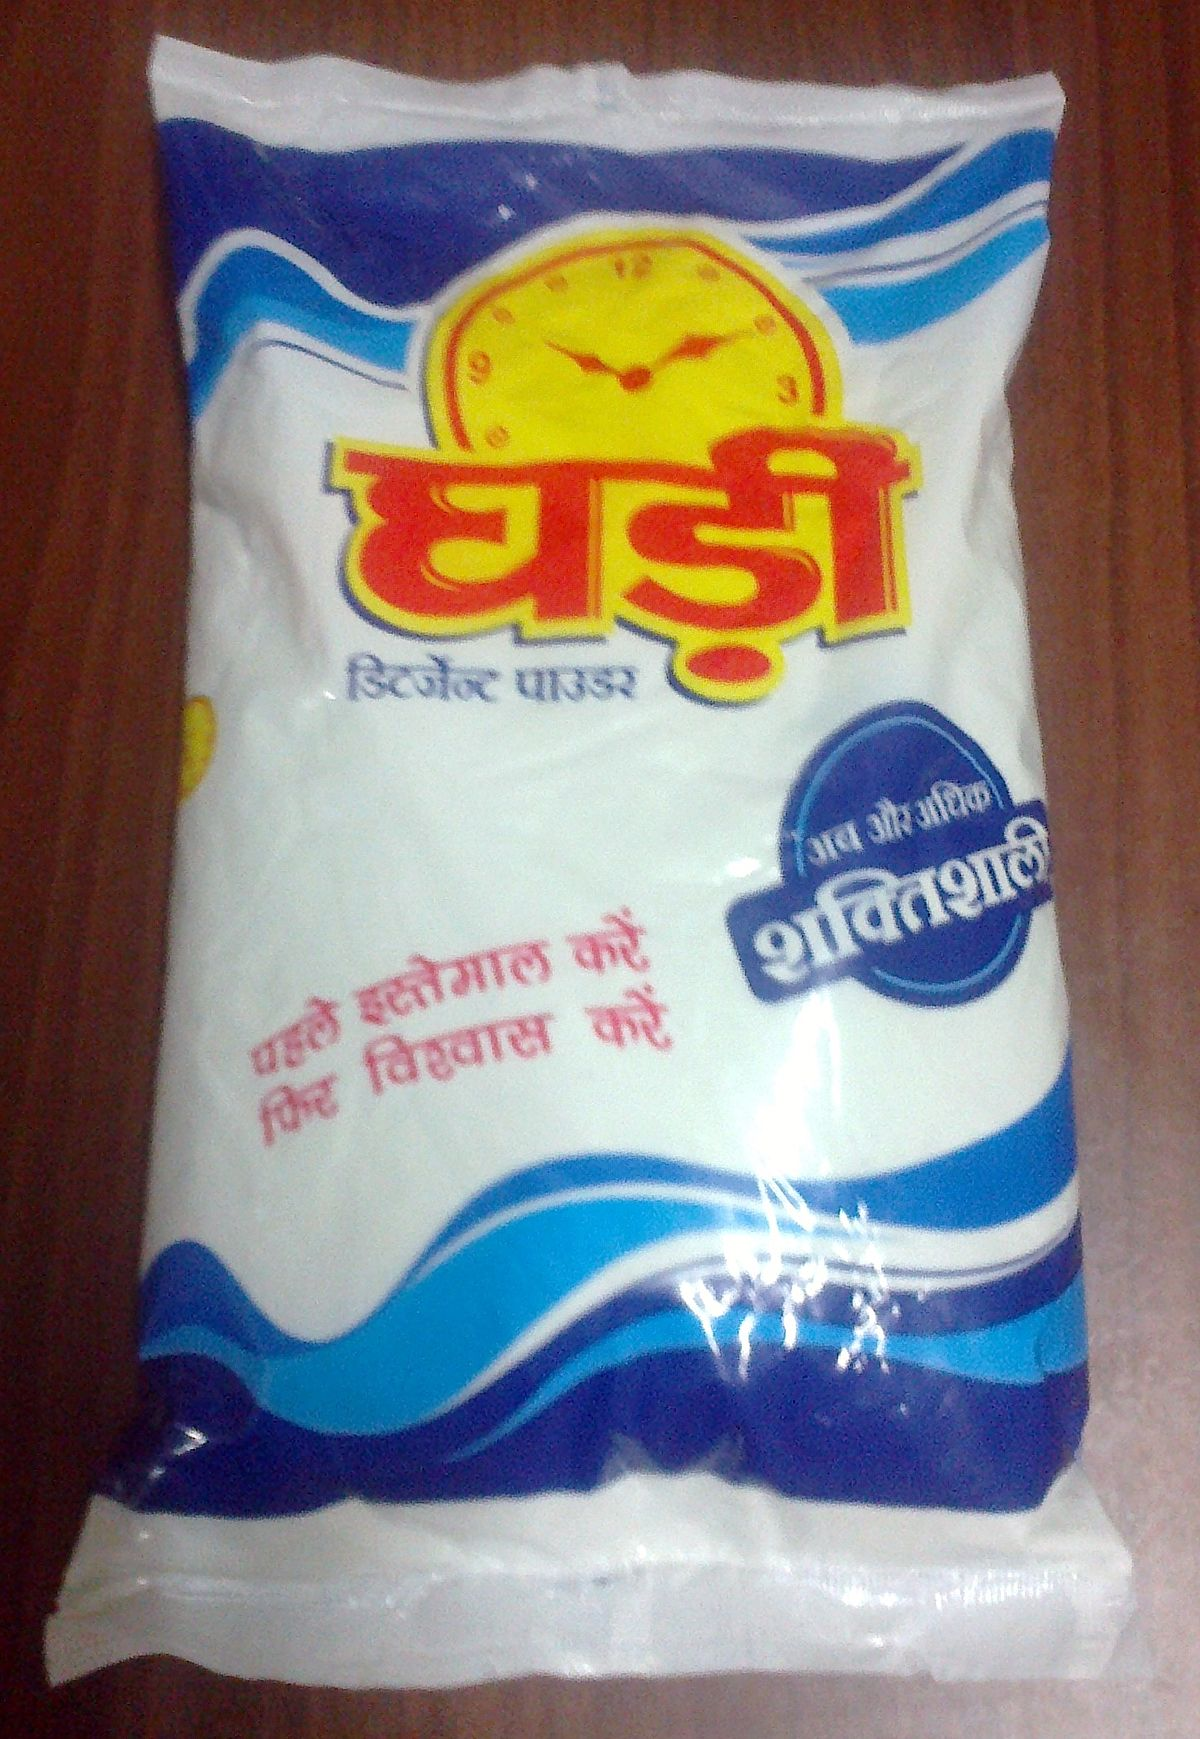 ghari detergent and cake 555 detergent cake is a detergent bar which remove dirt from cloths, kill germs and keep your cloth fresh as new for every.